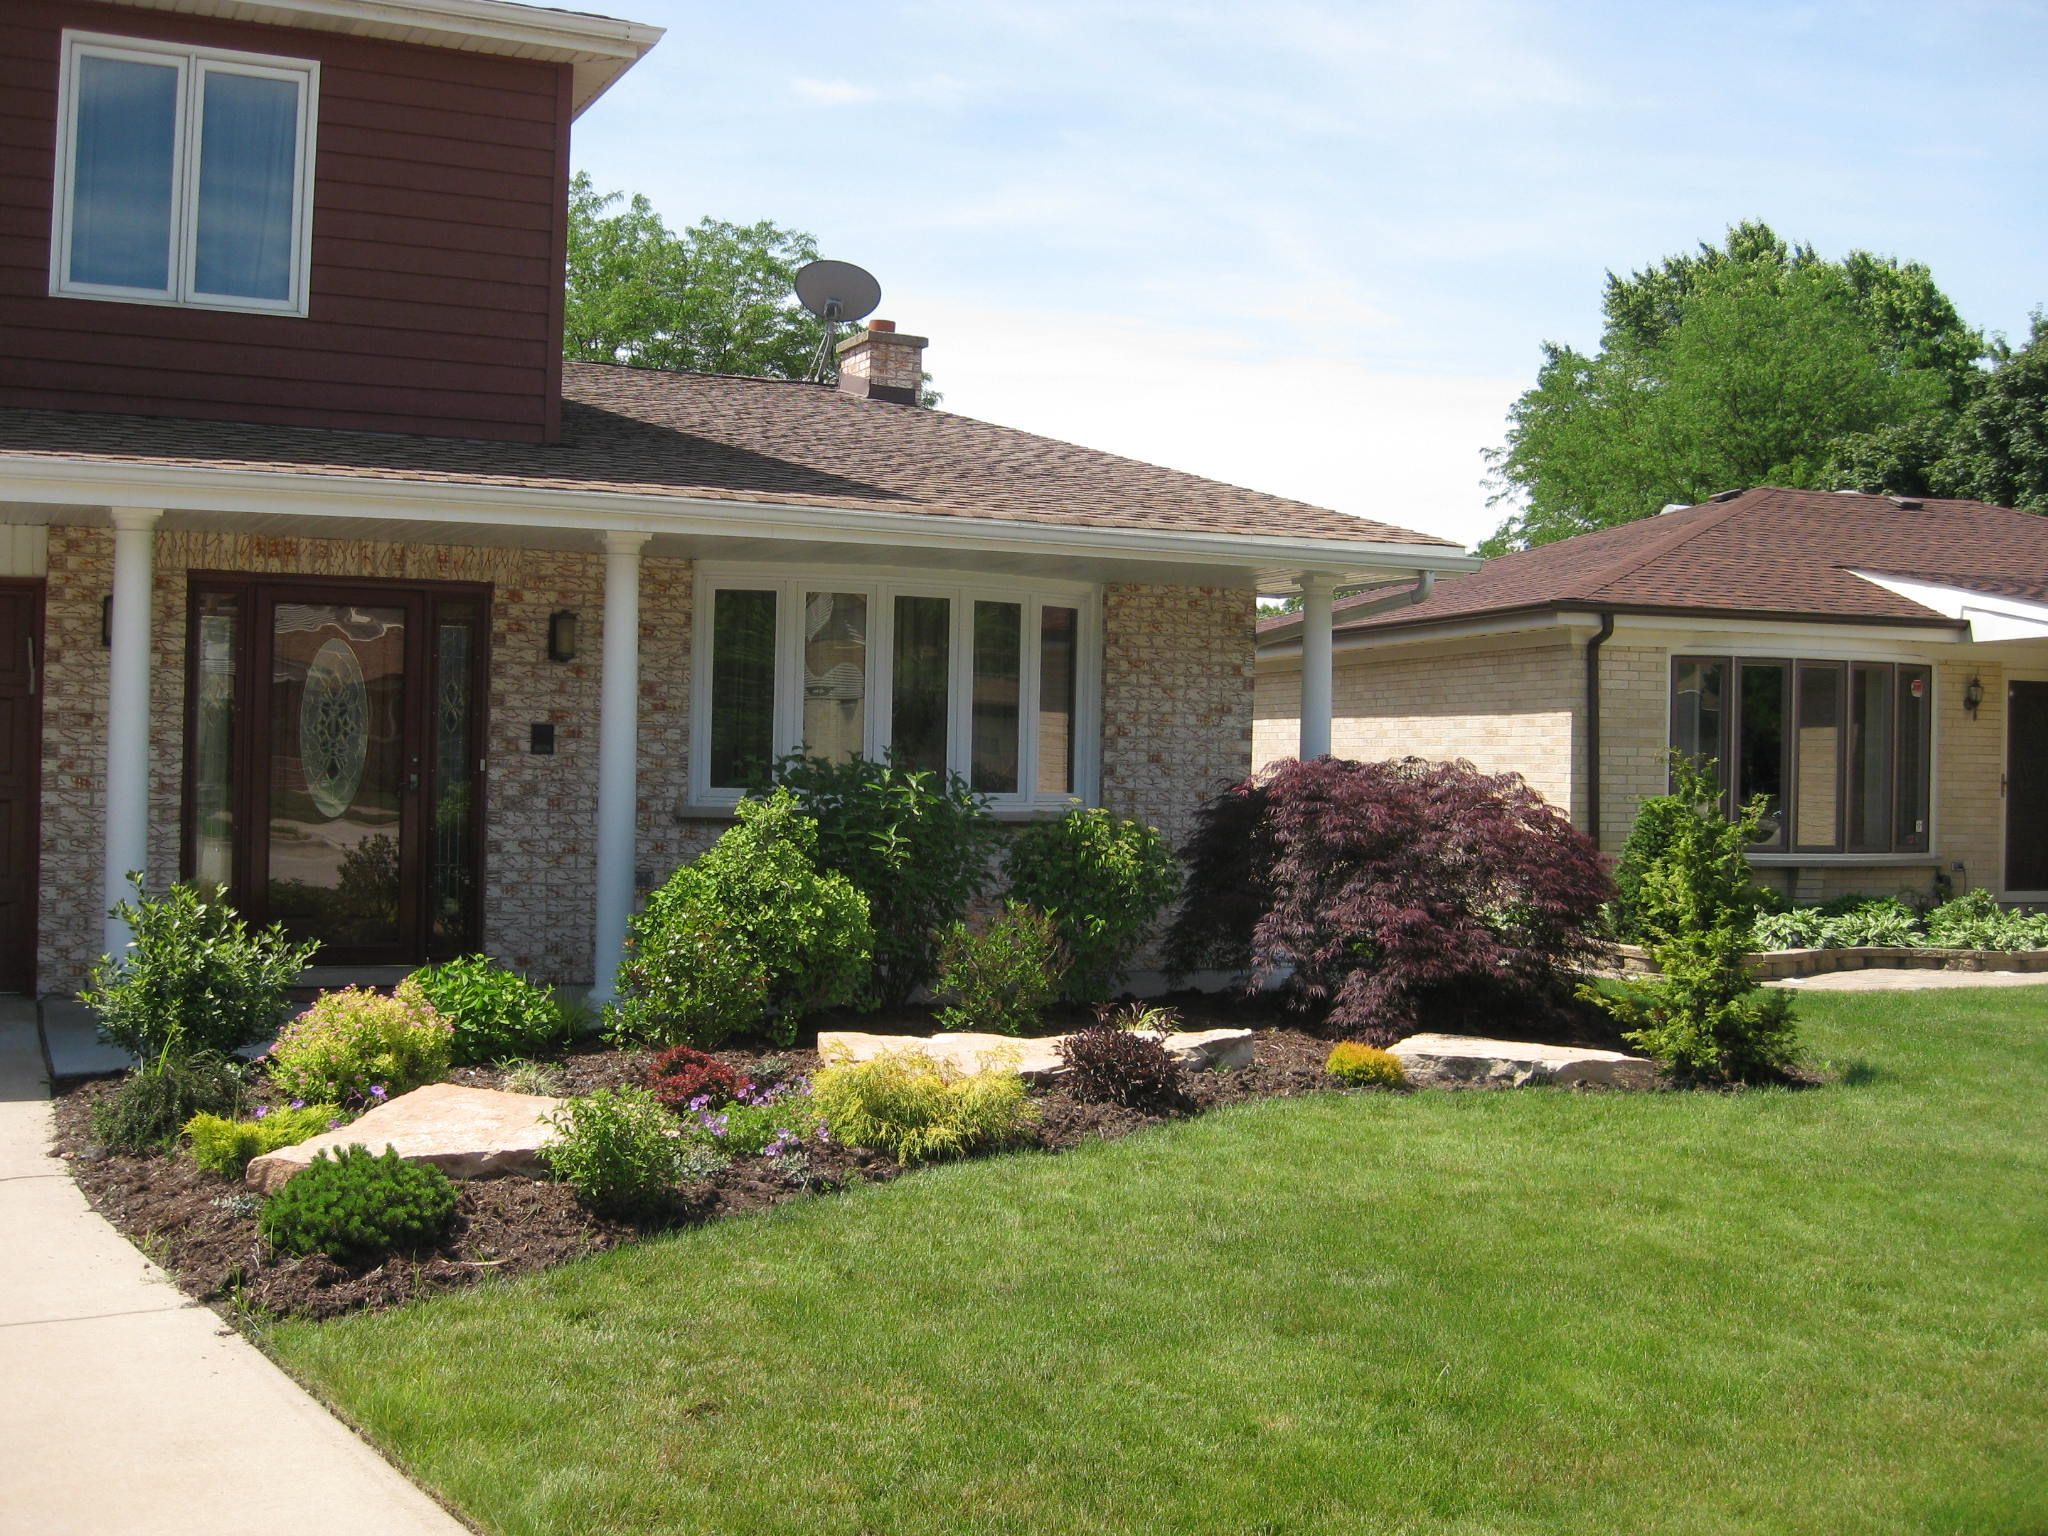 Southwestern Landscaping in Des Plaines by 4 Seasons Painting